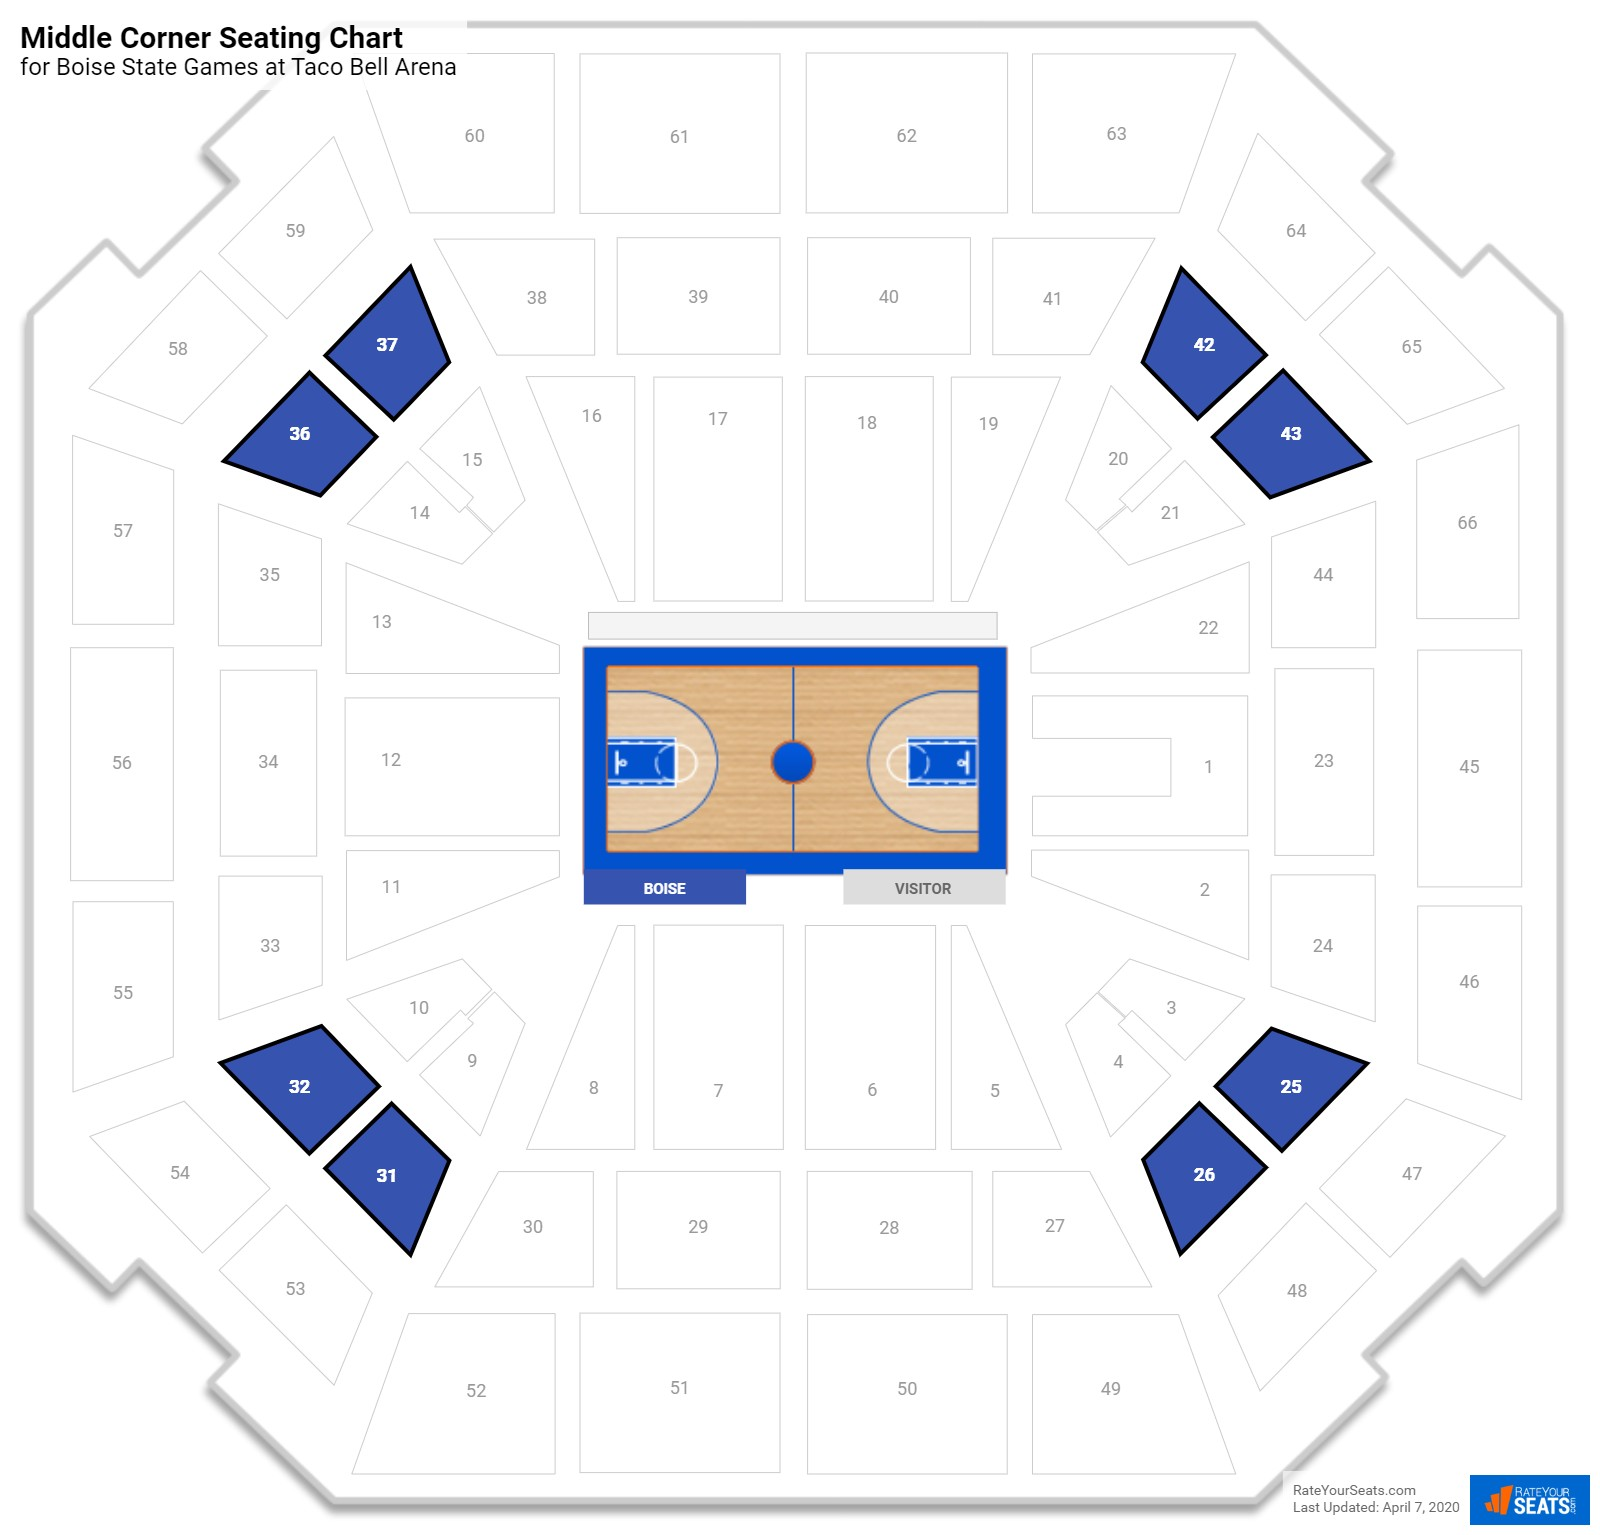 Taco Bell Arena Middle Level Corner seating chart